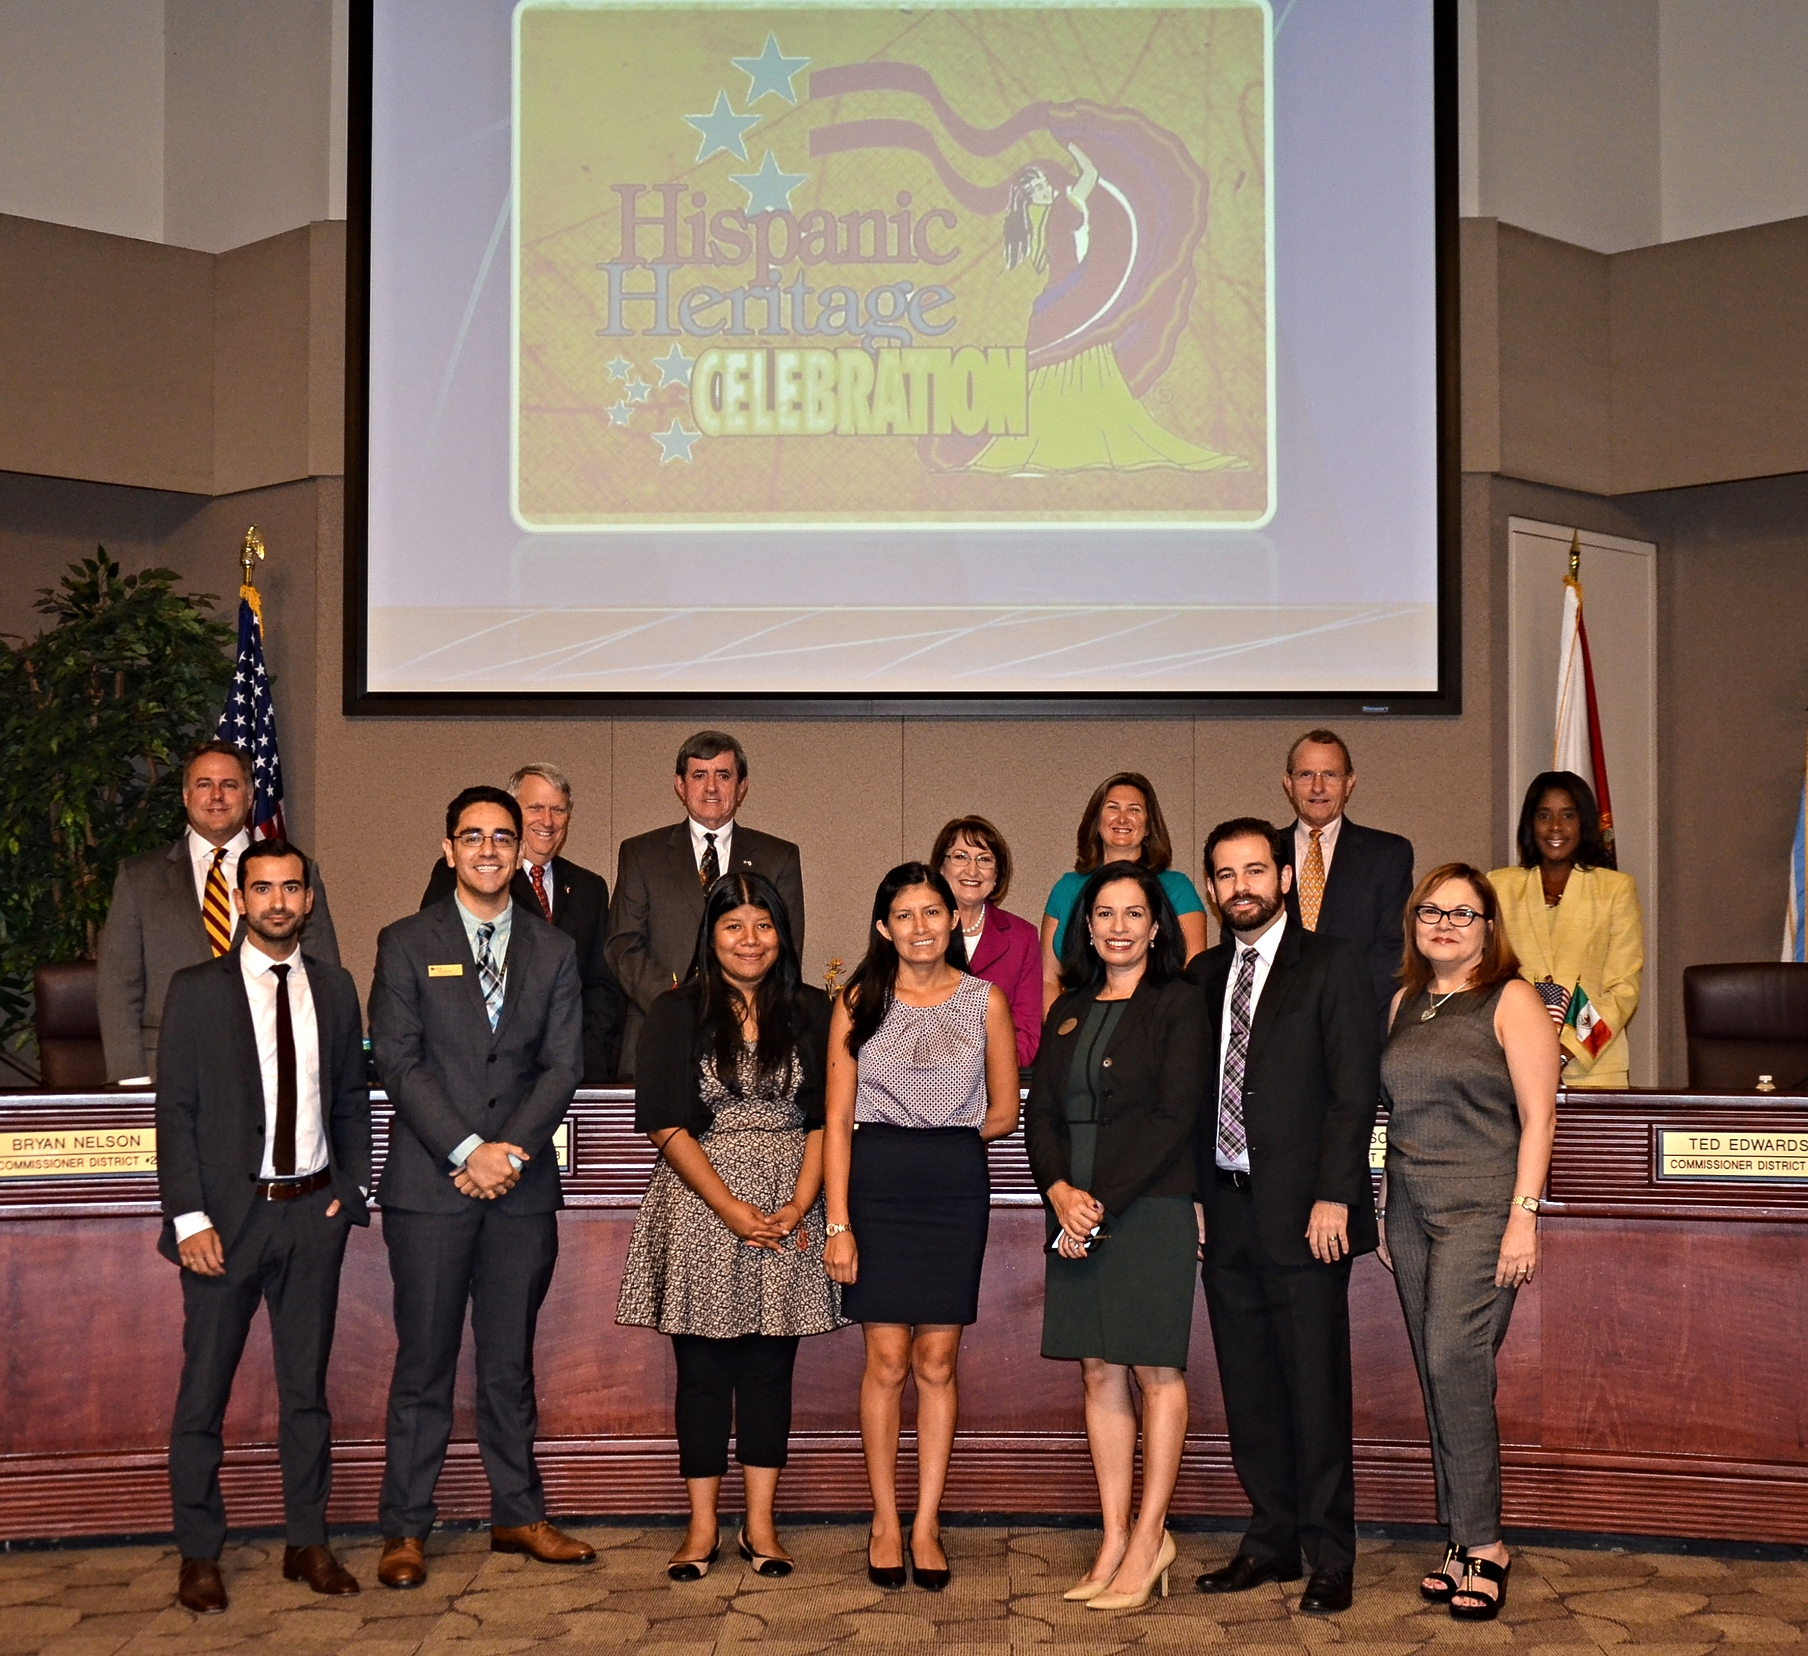 Pictured above-Top Row: District 1 Commissioner Scott Boyd,District 2 Commissioner Bryan Nelson, District 3 Commissioner Pete Clarke,Orange County Mayor Teresa Jacobs, District 4 Commissioner Jennifer Thompson, District 5 Commissioner Ted Edwards, District 6 commissioner Victoria Siplin.   Bottom Row: Gonzalo Loayza, Kevin Ortiz, Bernarda Garcia, Karol Haugan, Maritza Martinez, Omar Cardona-Sanchez, Nancy Sharifi